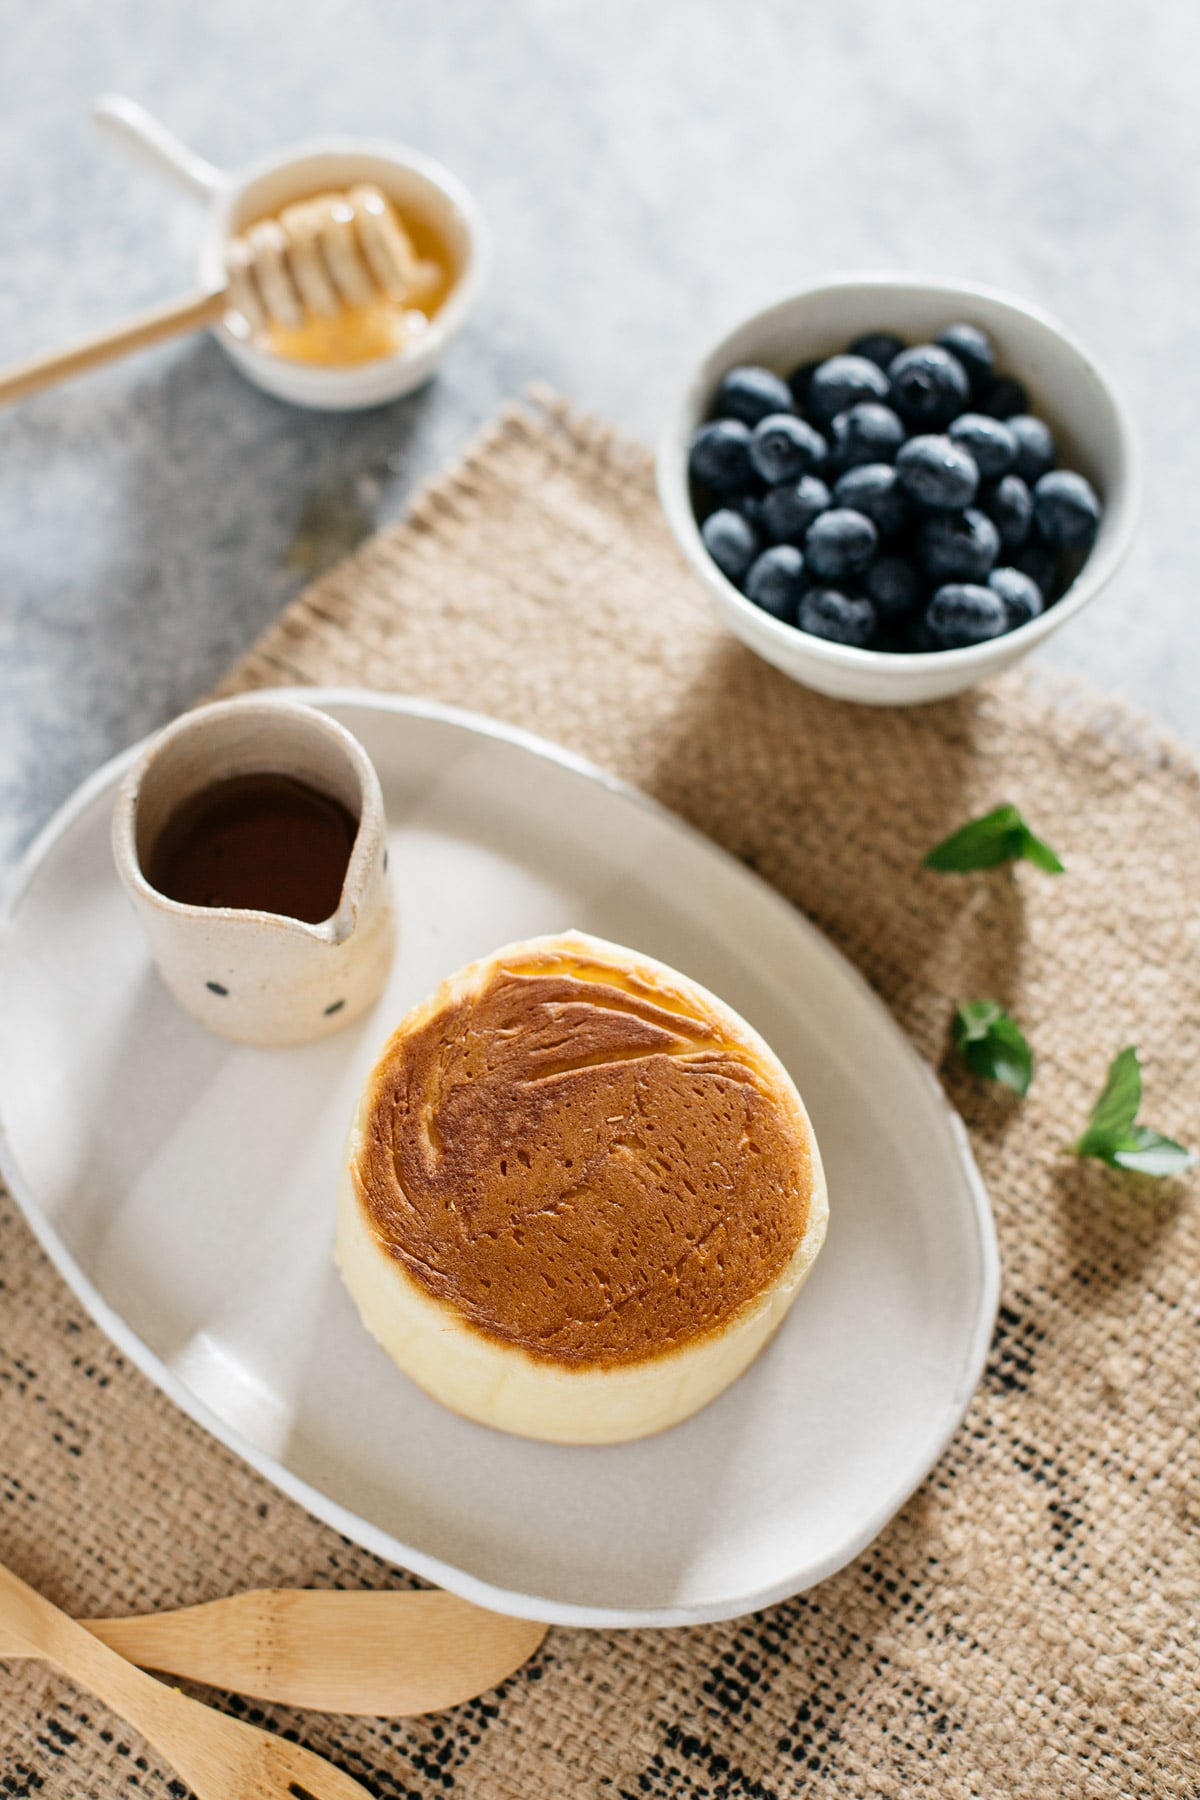 a bird view of Japanese pan cake with syrup and a bowl of blueberries